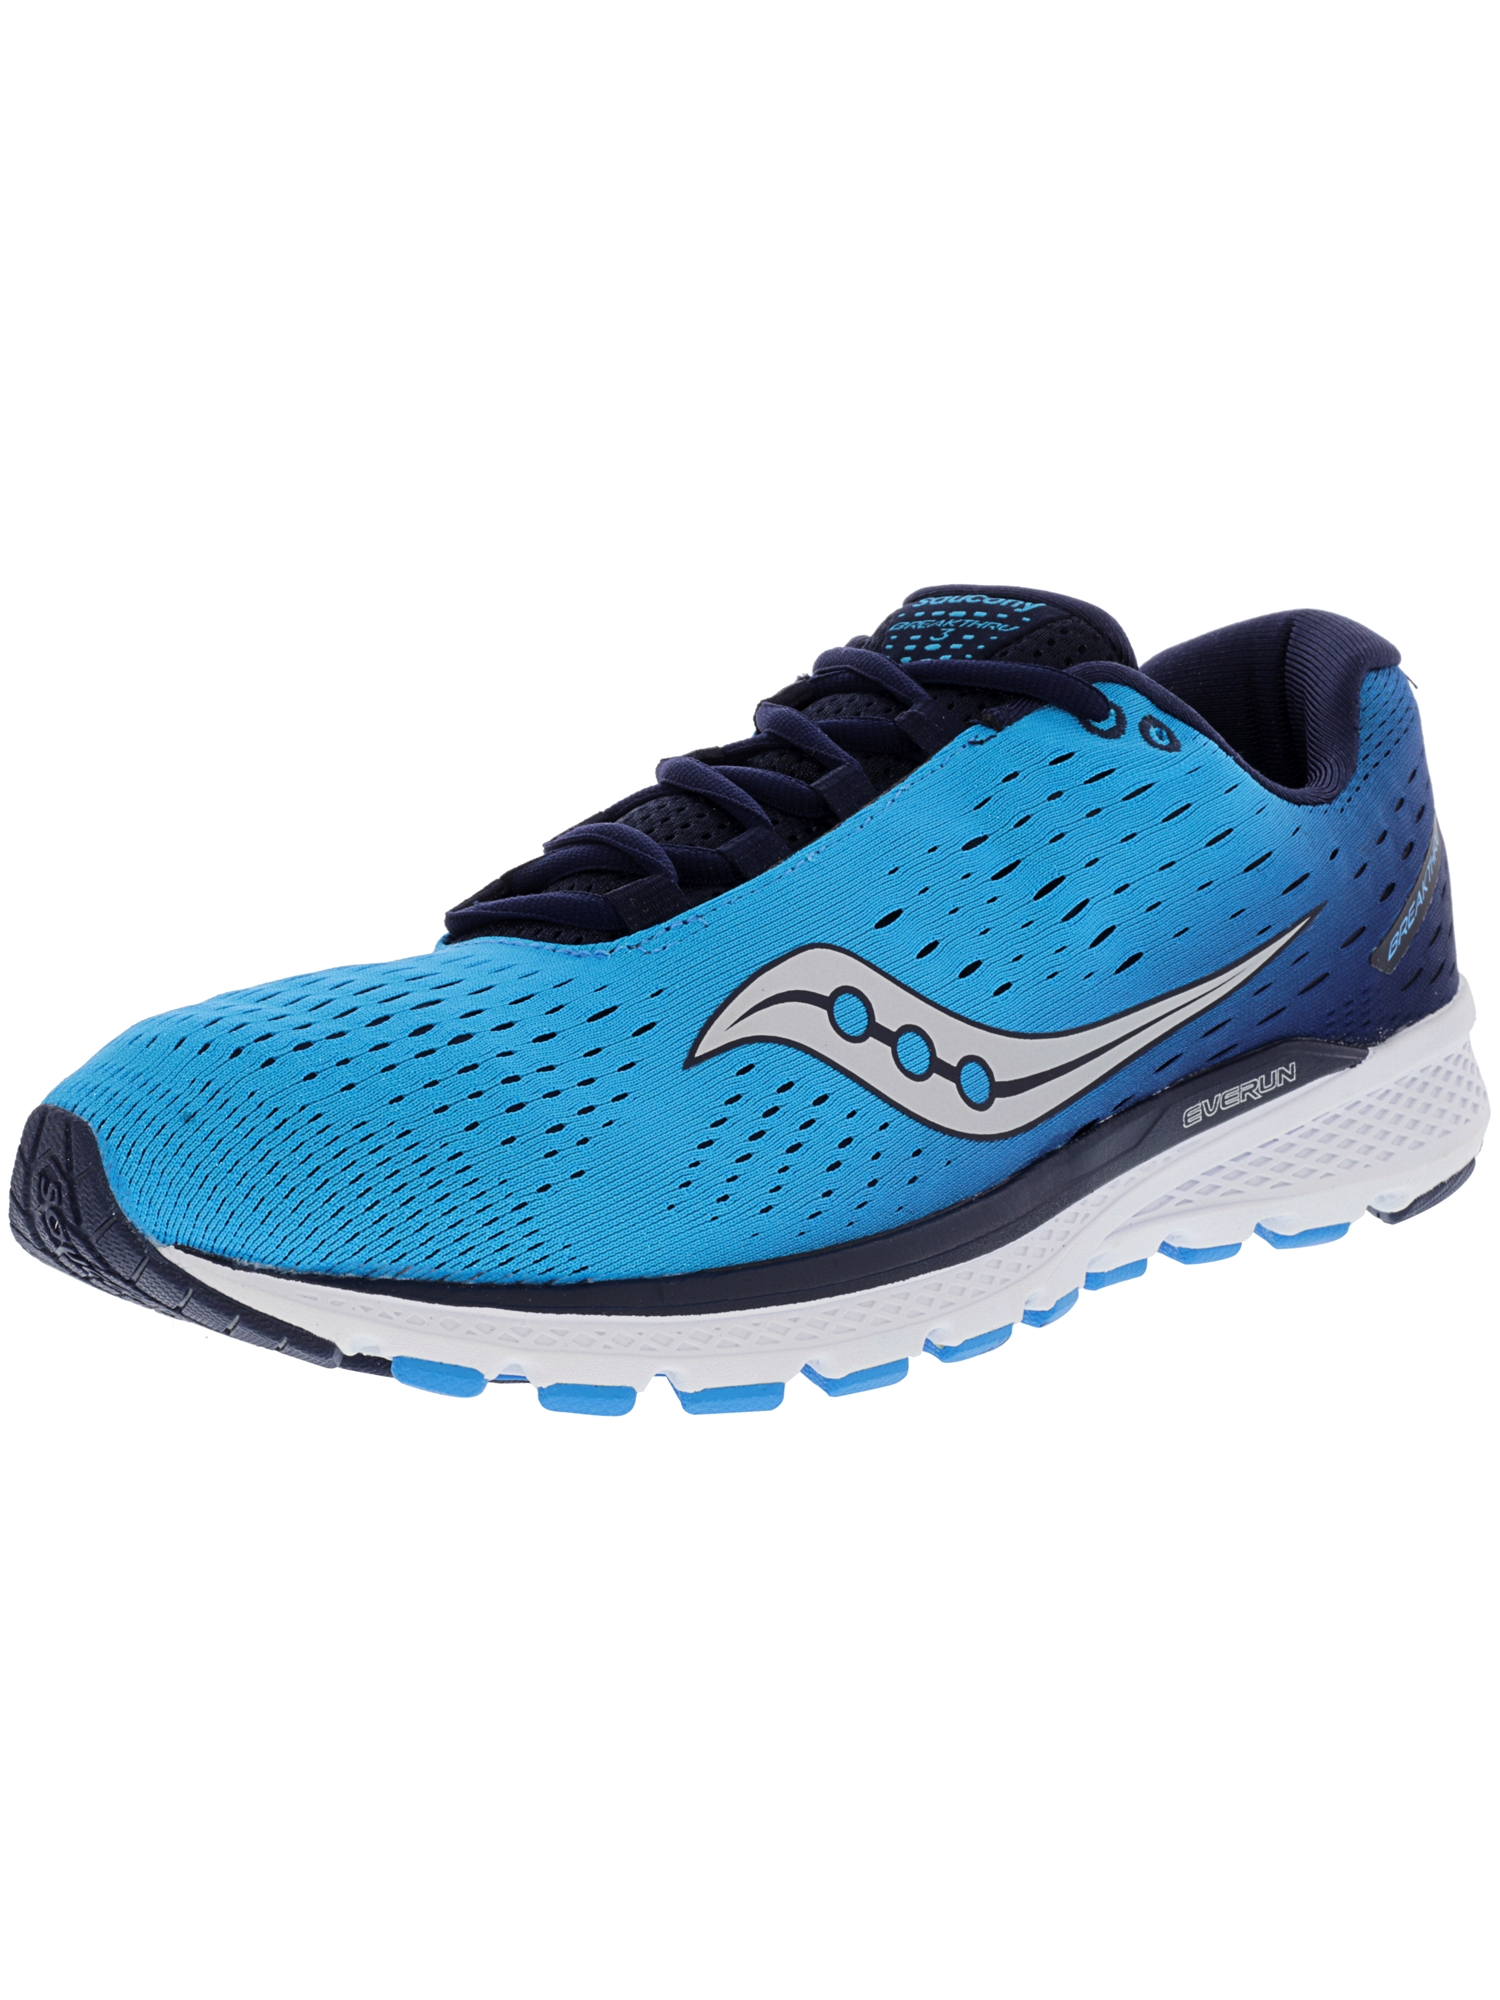 Saucony Men's Breakthru 3 Blue   Navy Ankle-High Running Shoe 9M by Saucony